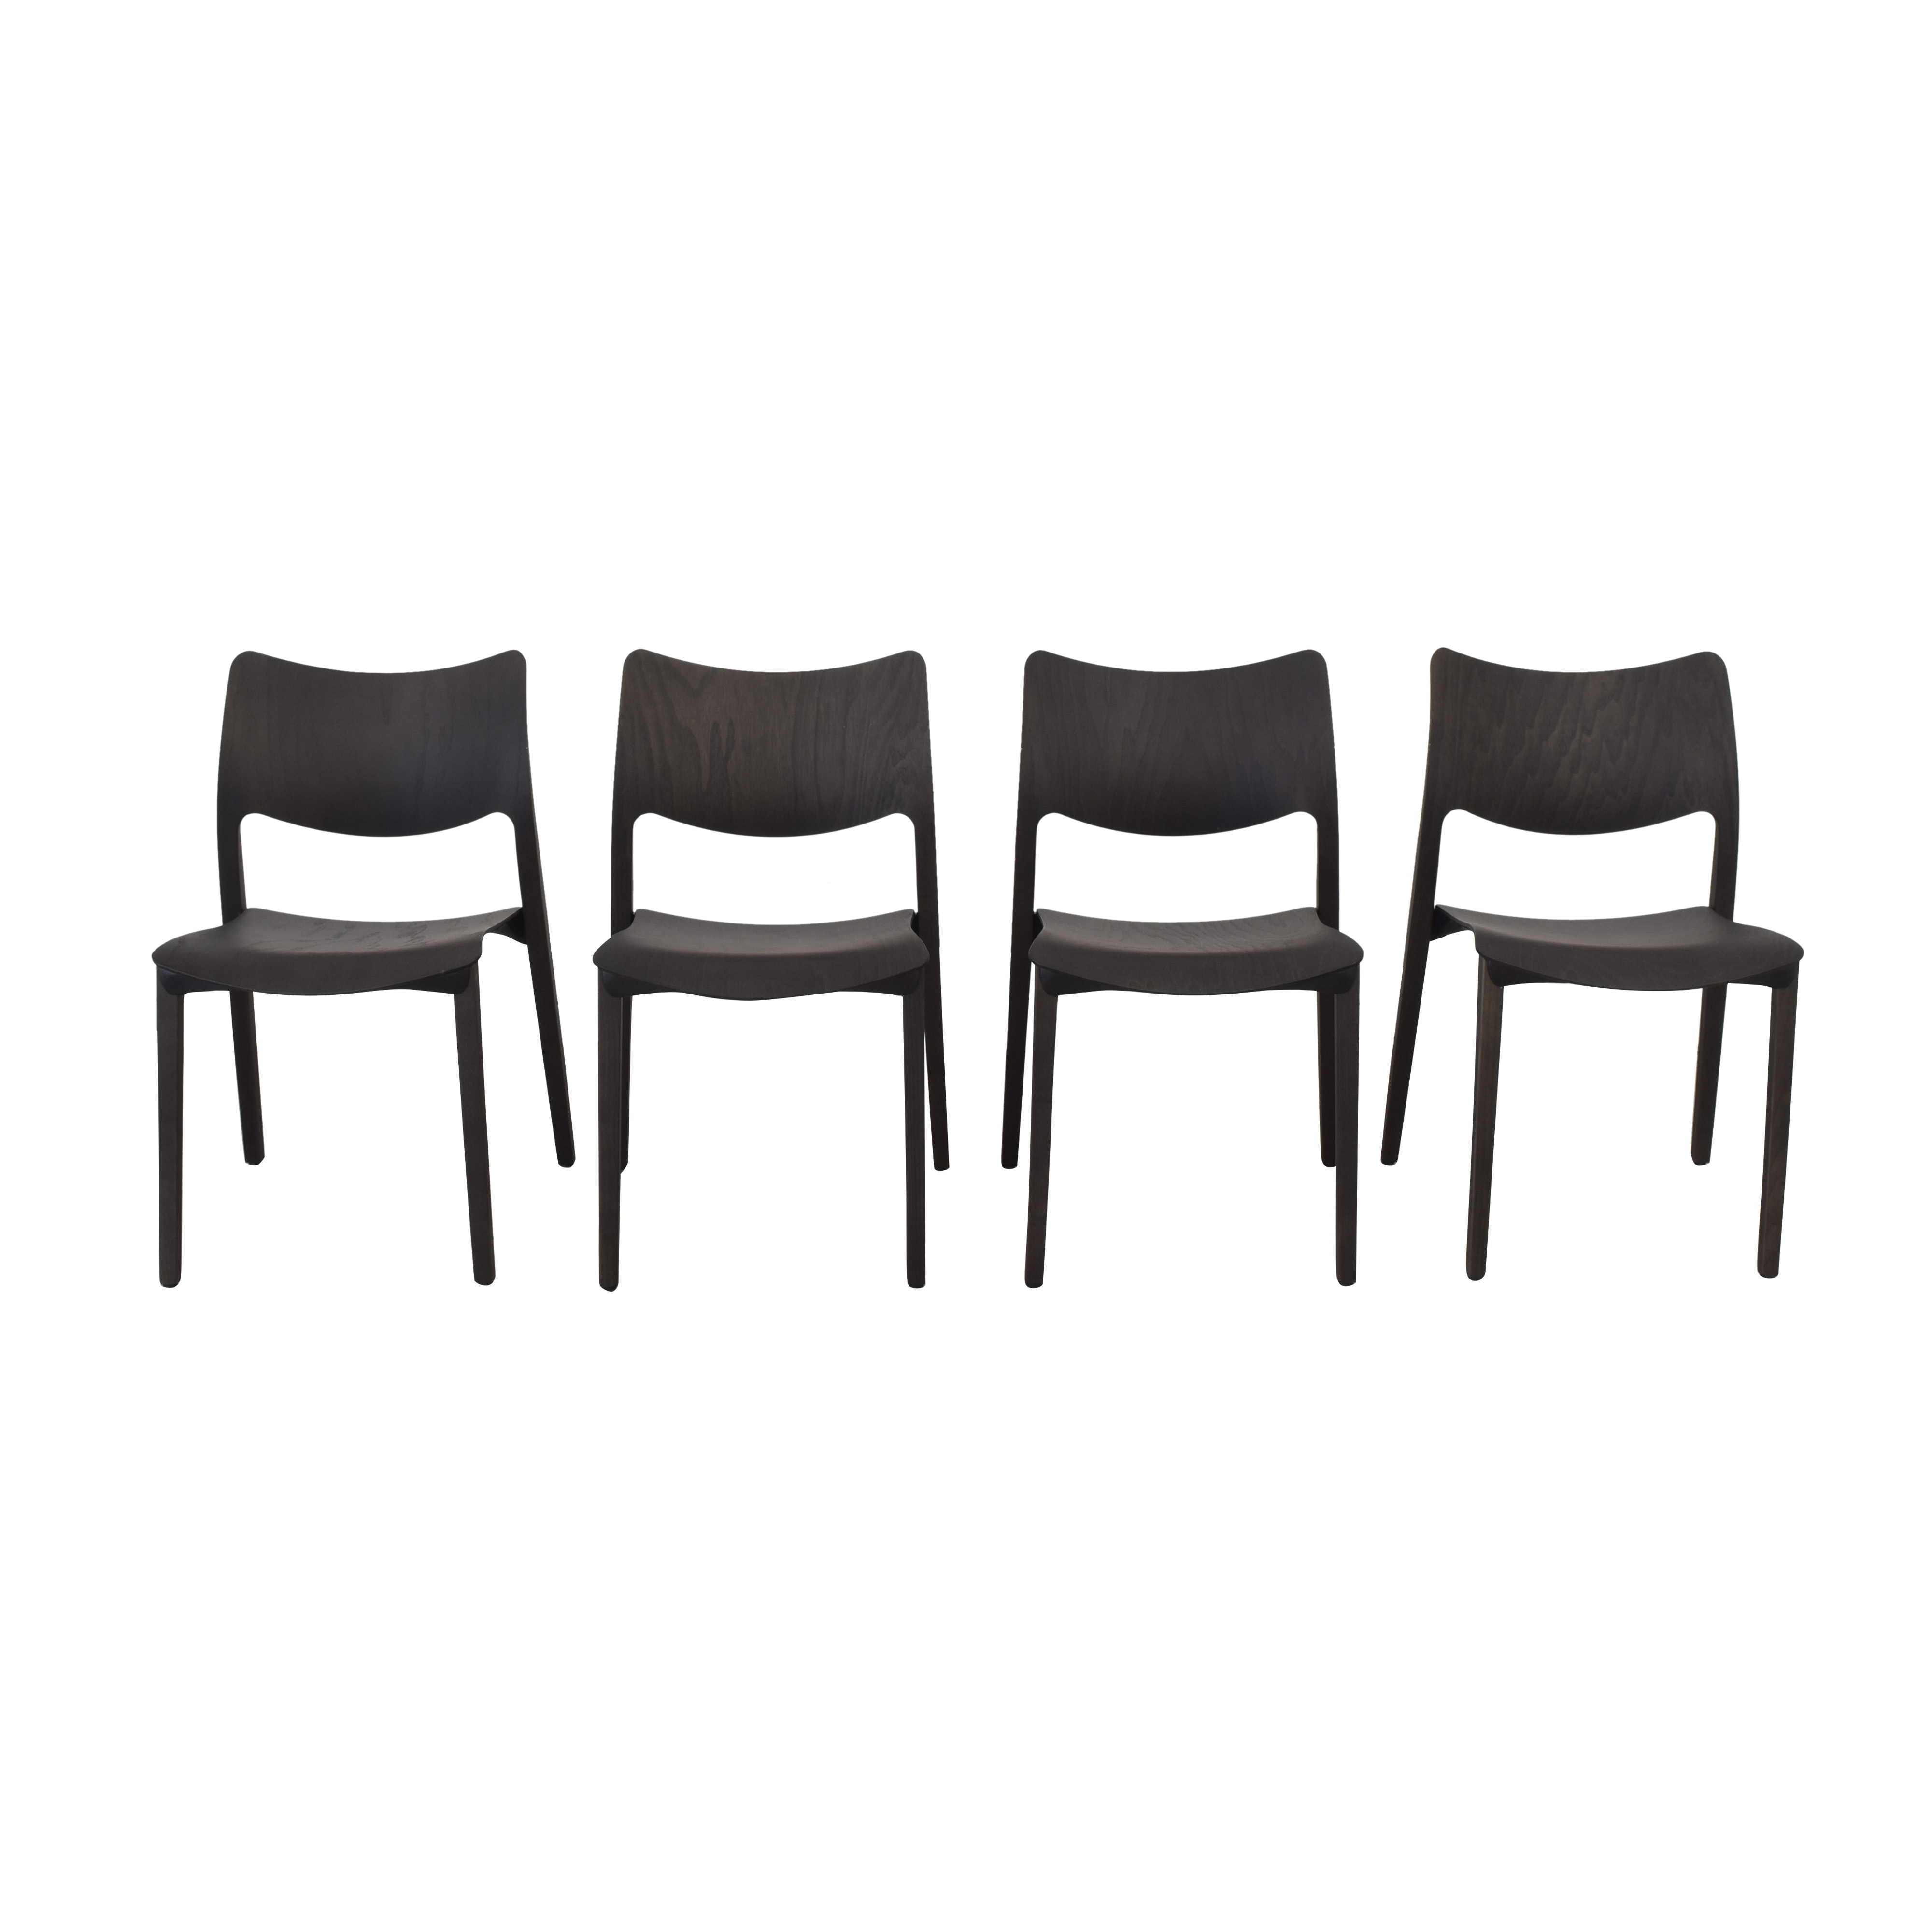 Design Within Reach Design Within Reach Laclasica Dining Chairs ct